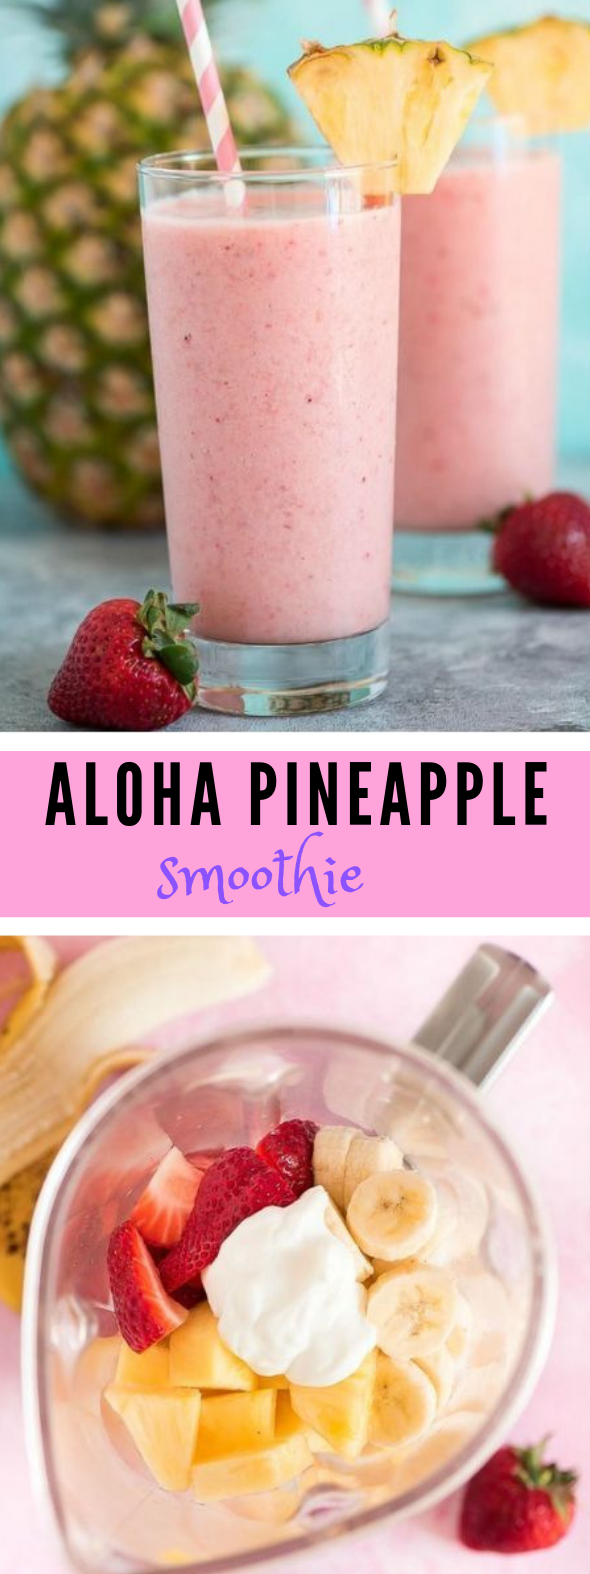 ALOHA TROPICAL SMOOTHIE #delicious #smoothie